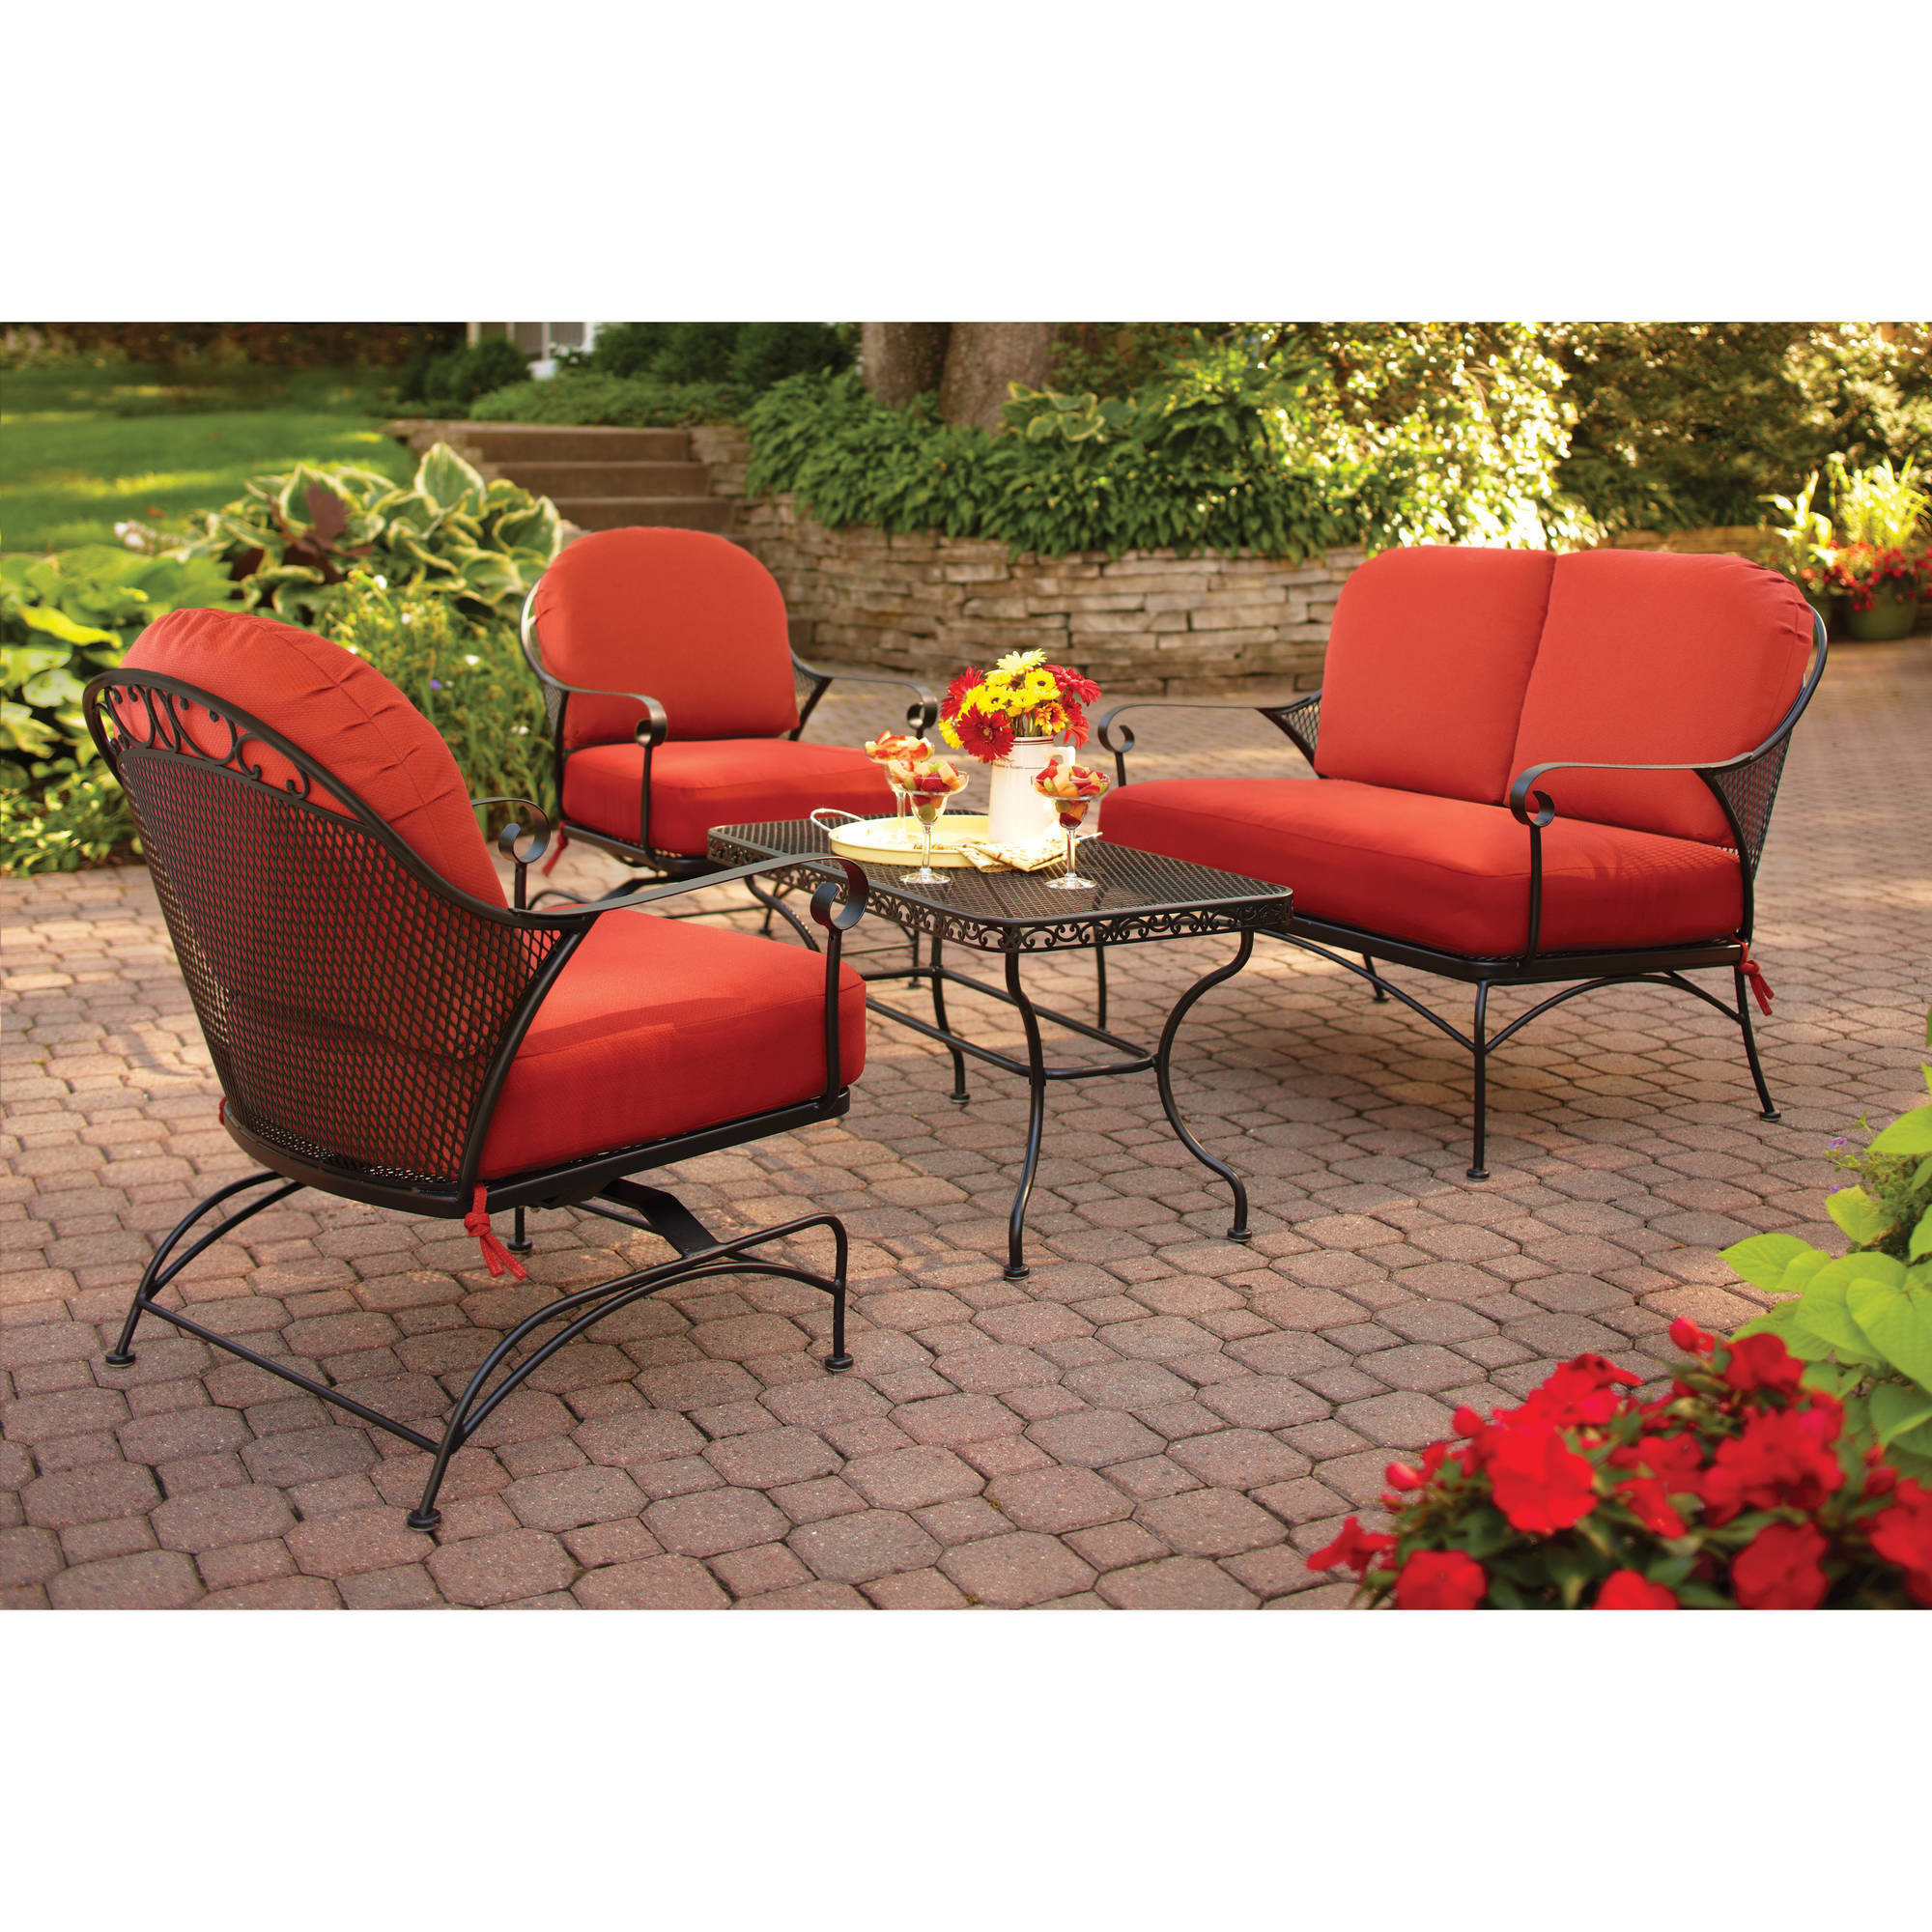 Better Homes and Gardens Clayton Court 4-Piece Patio Conversation Set